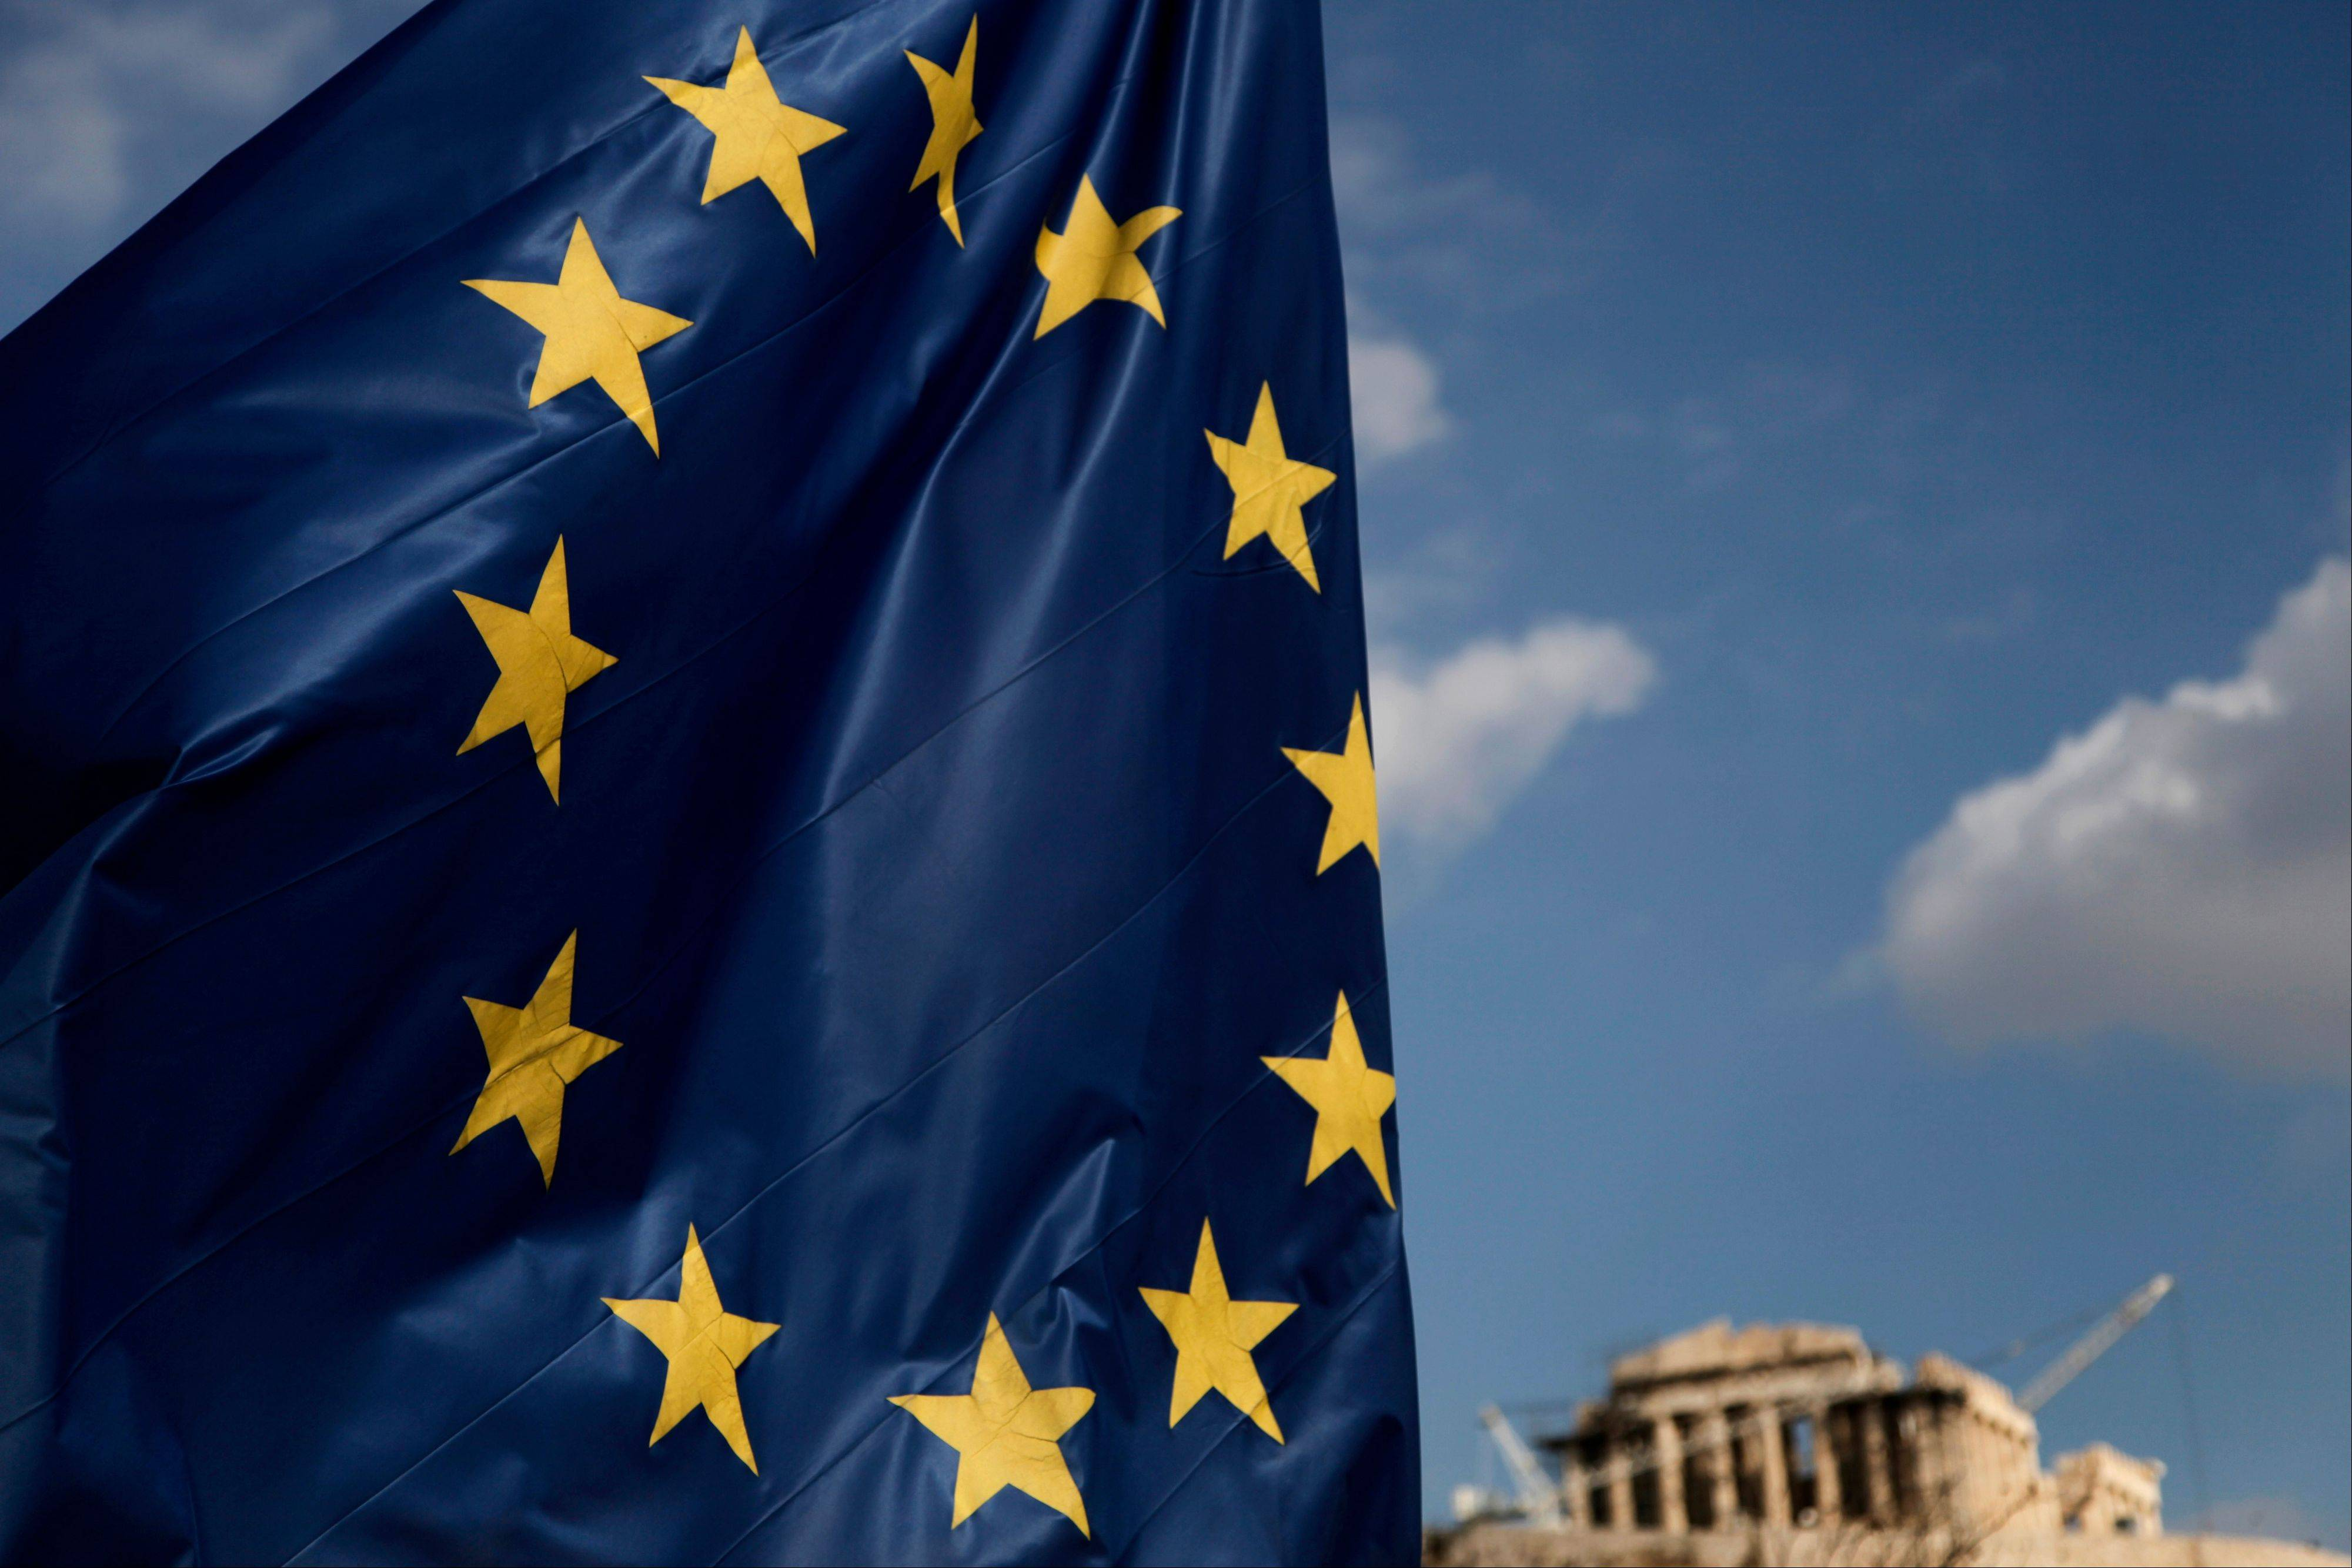 A European Union flag billows in the wind as the Parthenon temple is seen in the background on the Acropolis in Athens Monday. The ministers of the 17 countries that use the euro met in Brussels Monday to settle on Greece's next rescue loan installment.